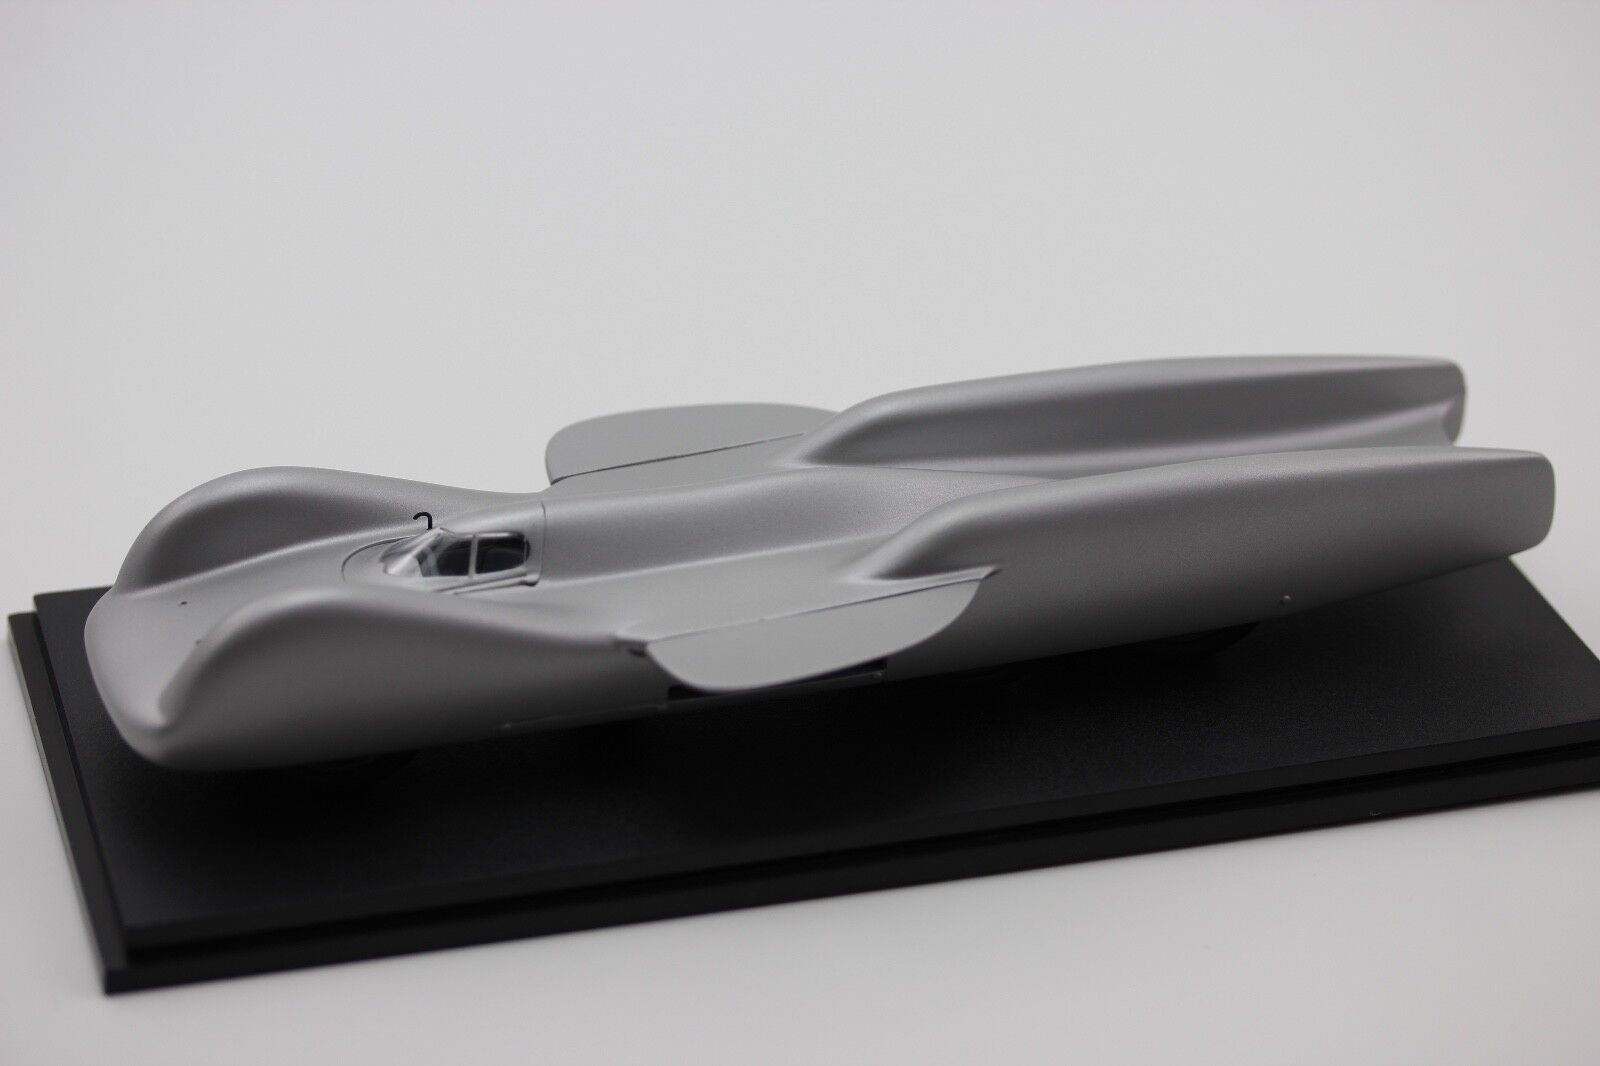 Mercedes-Benz T 80 Record Voiture 1939 argent 1 43 Resin 1 43 Neo 46975